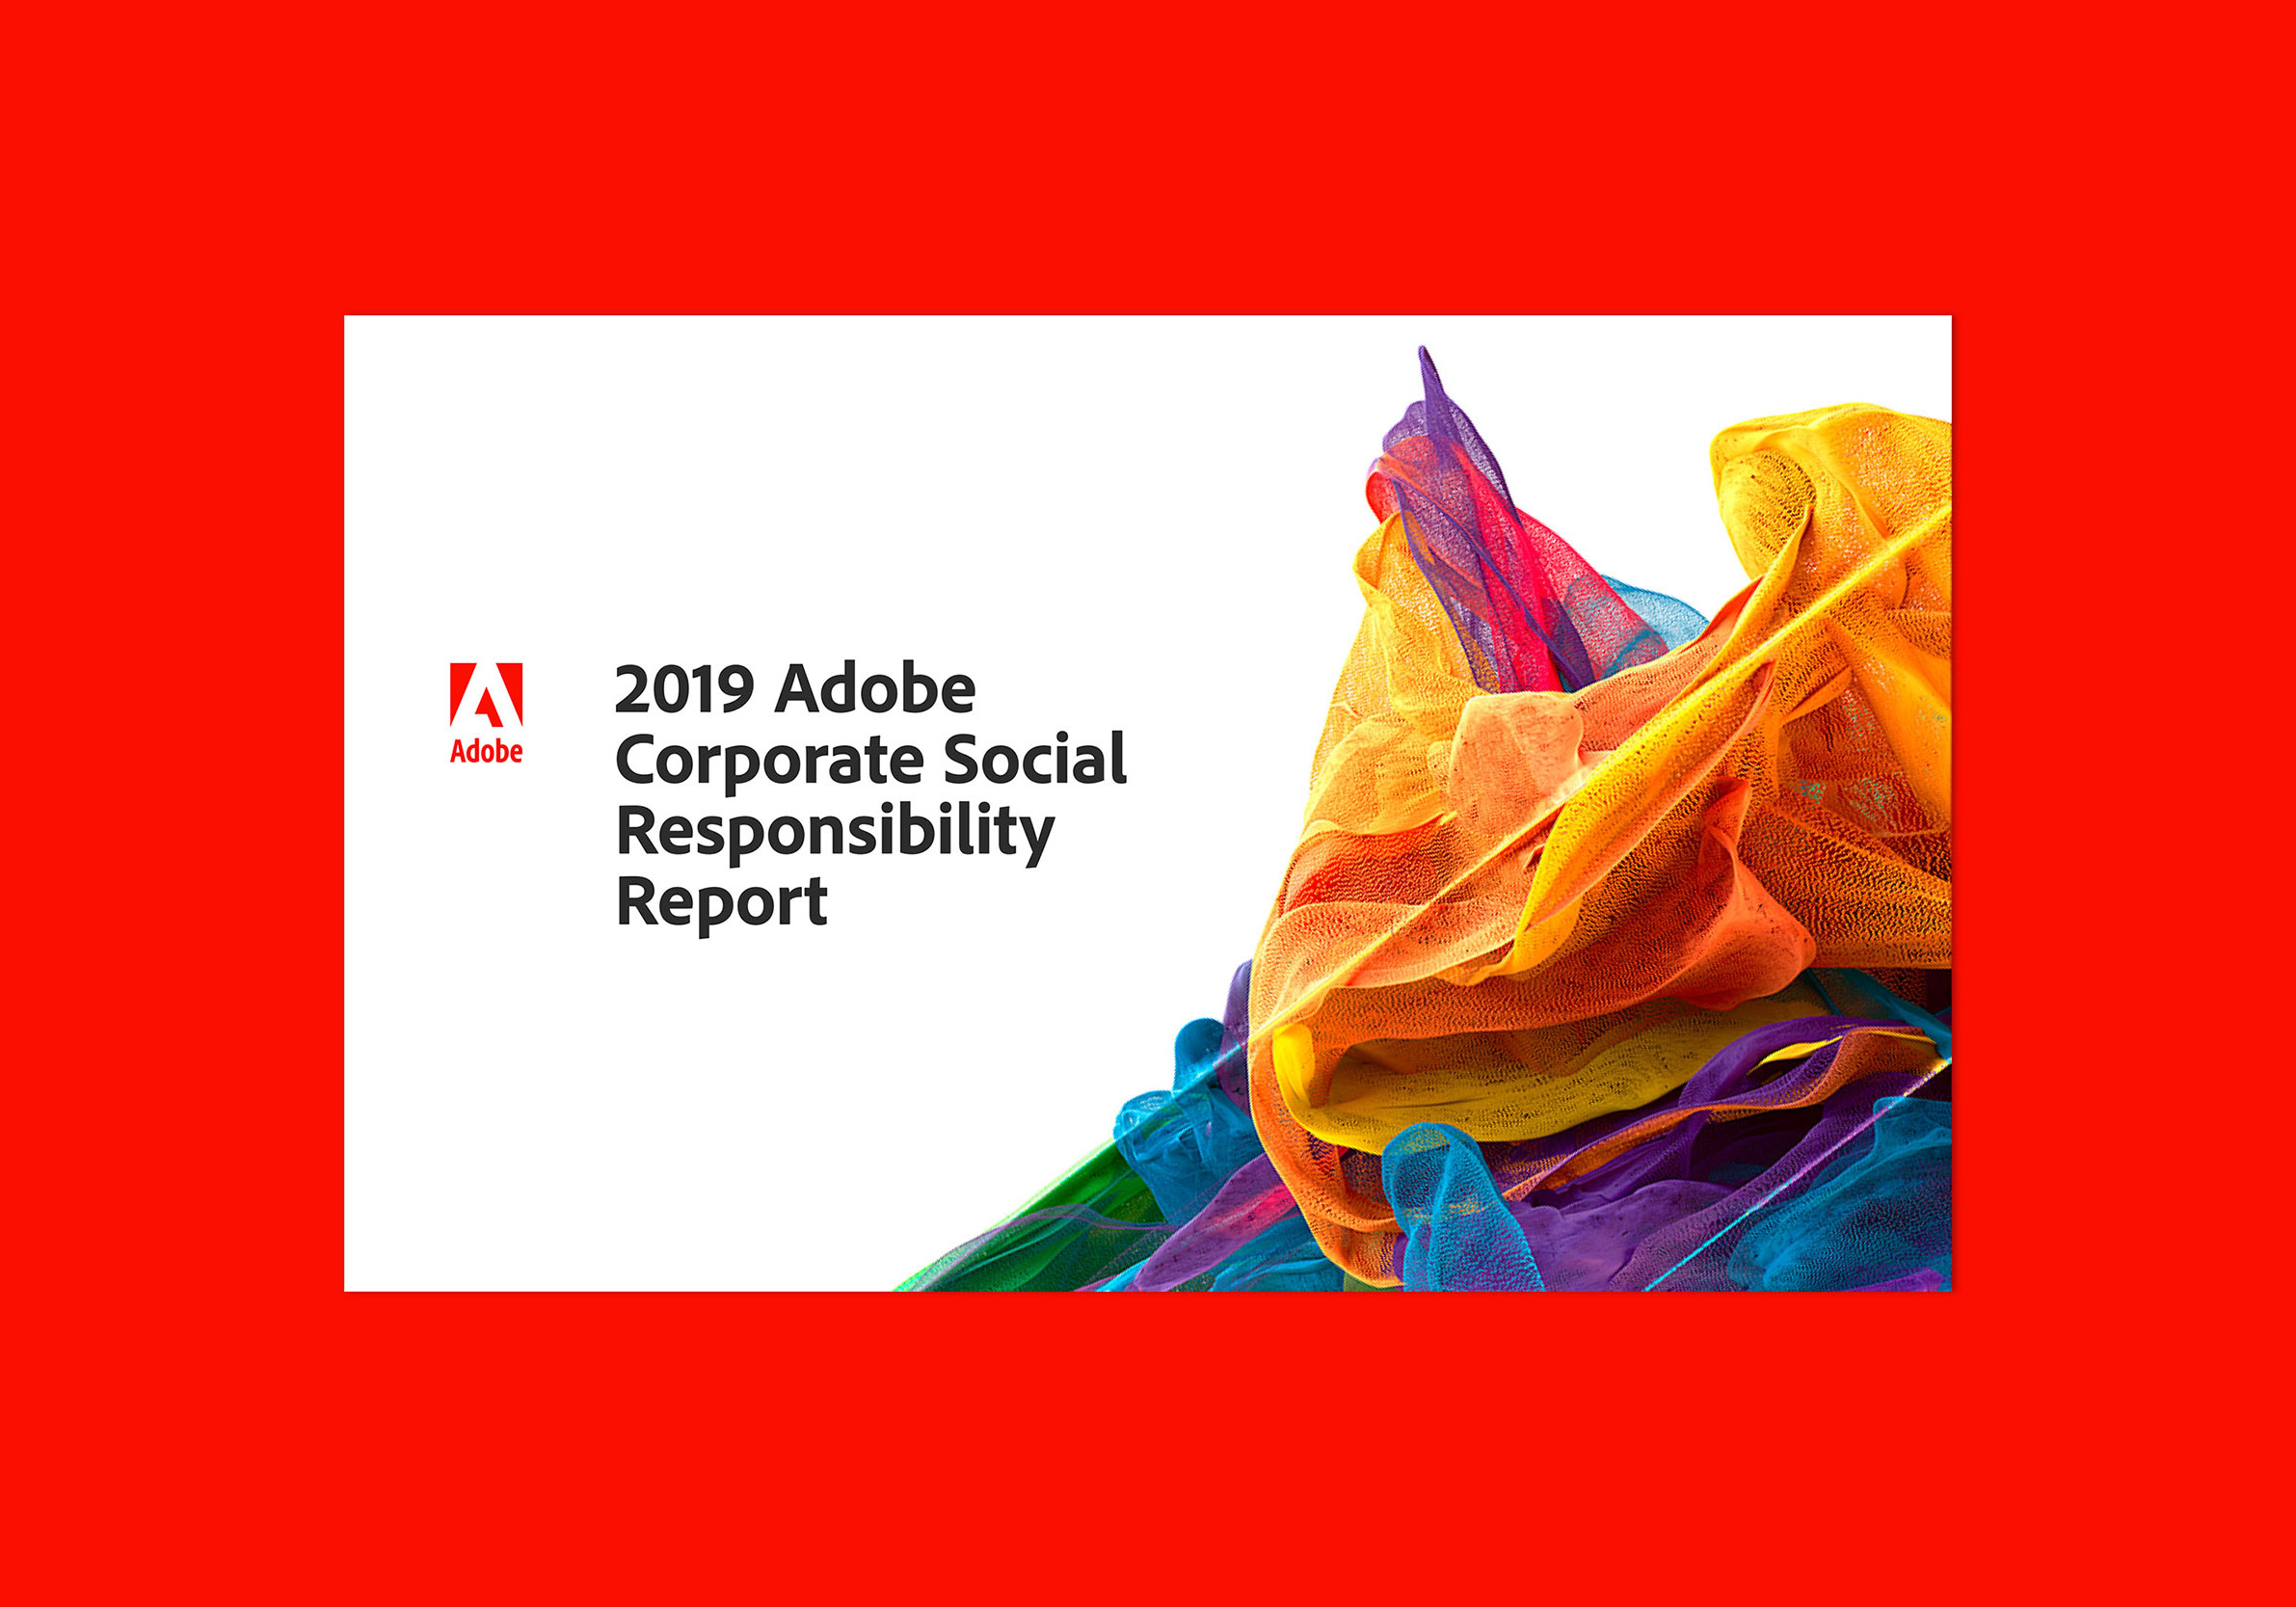 ADOBE CORPORATE SOCIAL RESPONSIBILITY